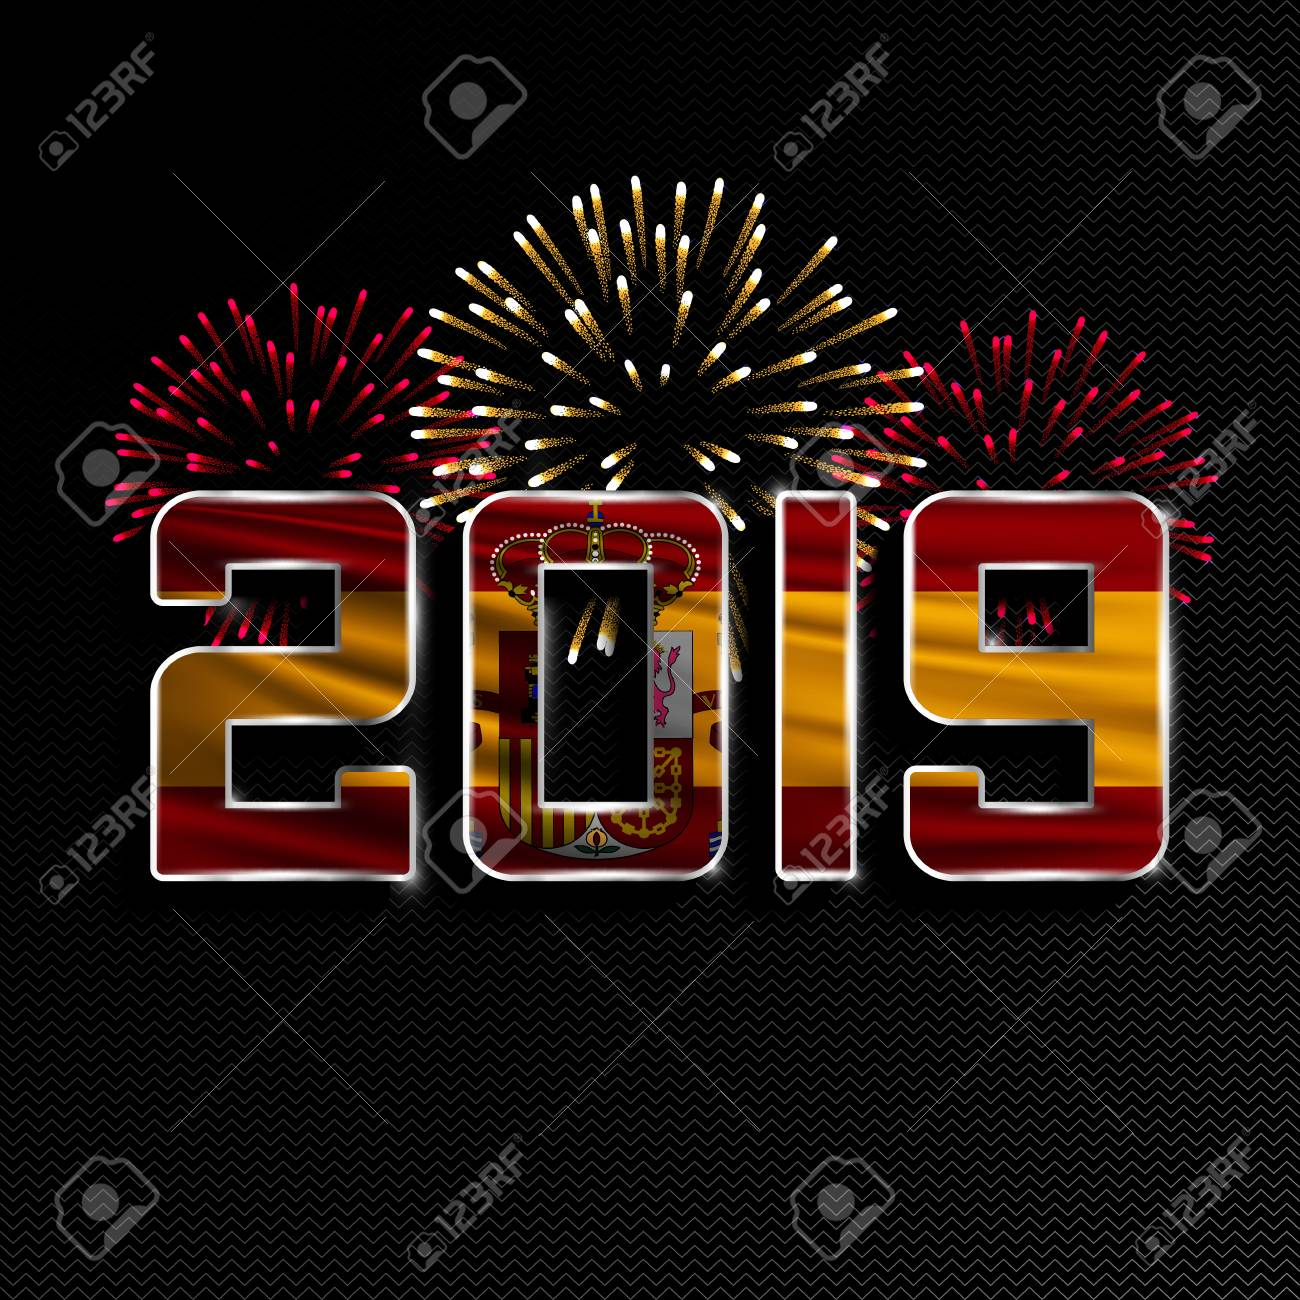 Christmas In Spain 2019 Happy New Year And Merry Christmas. 2019 New Year Background